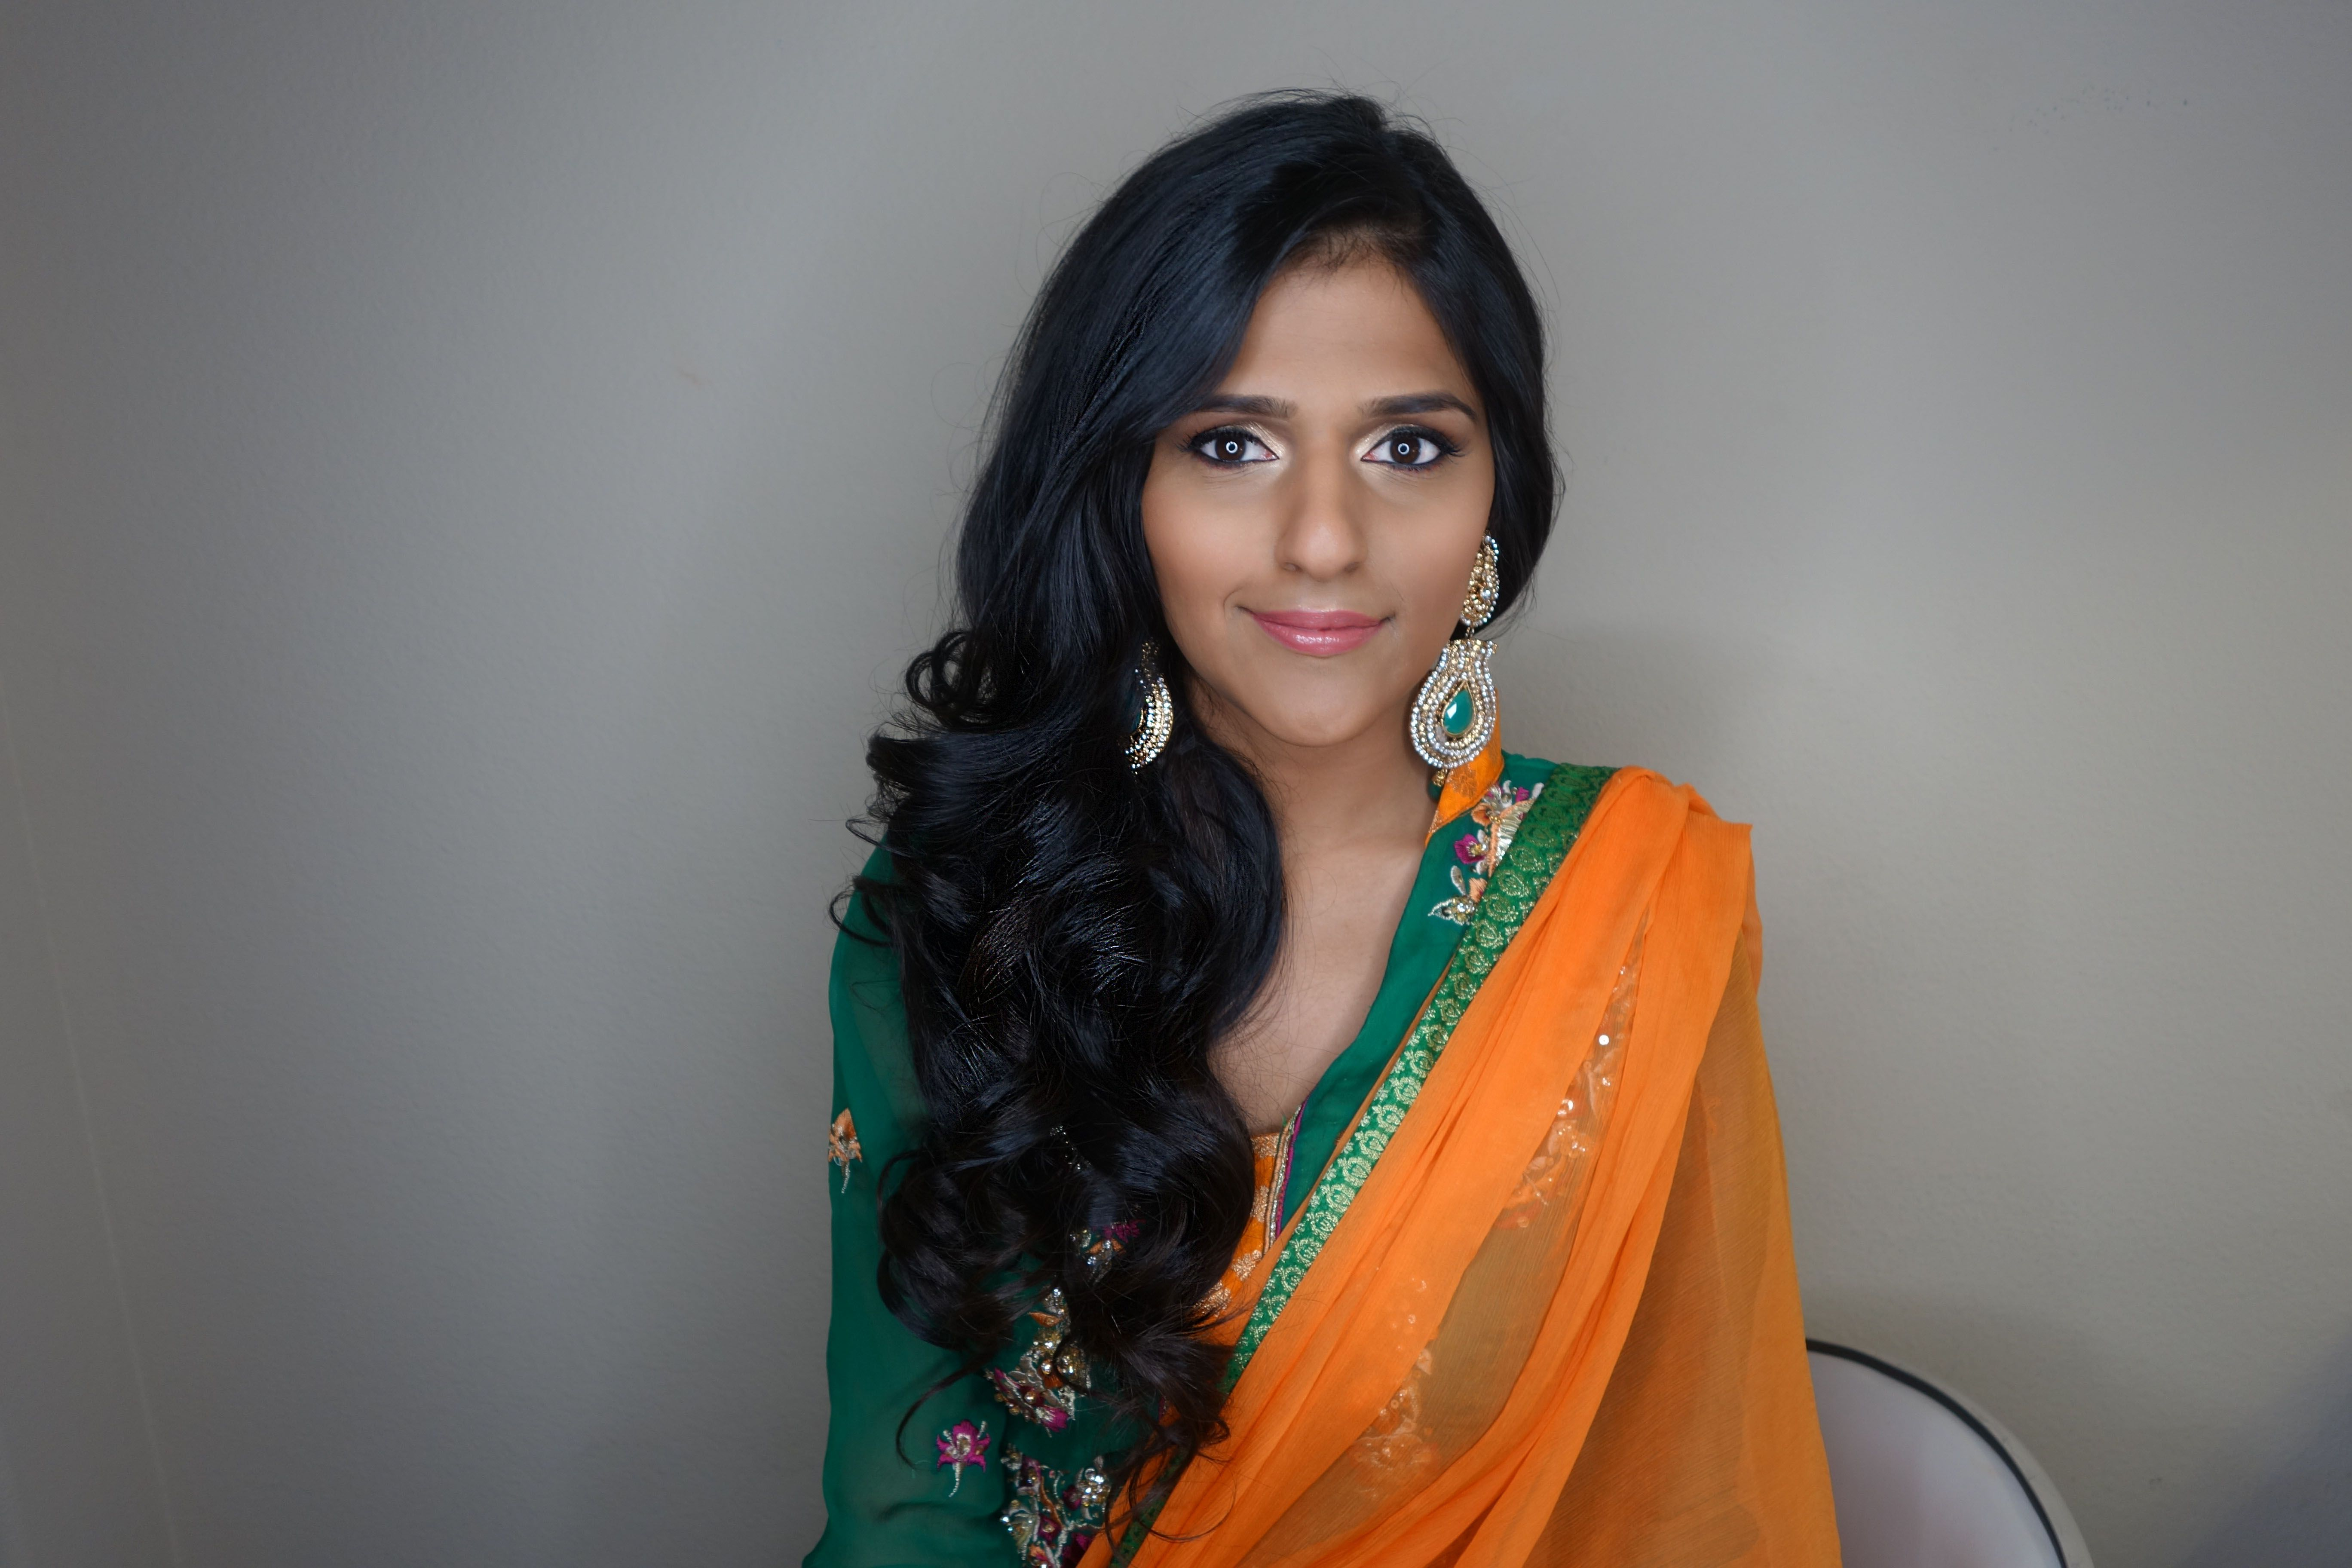 Makeup For Mehndi Night : Traditional indian bridal hair and makeup for mehndi night by